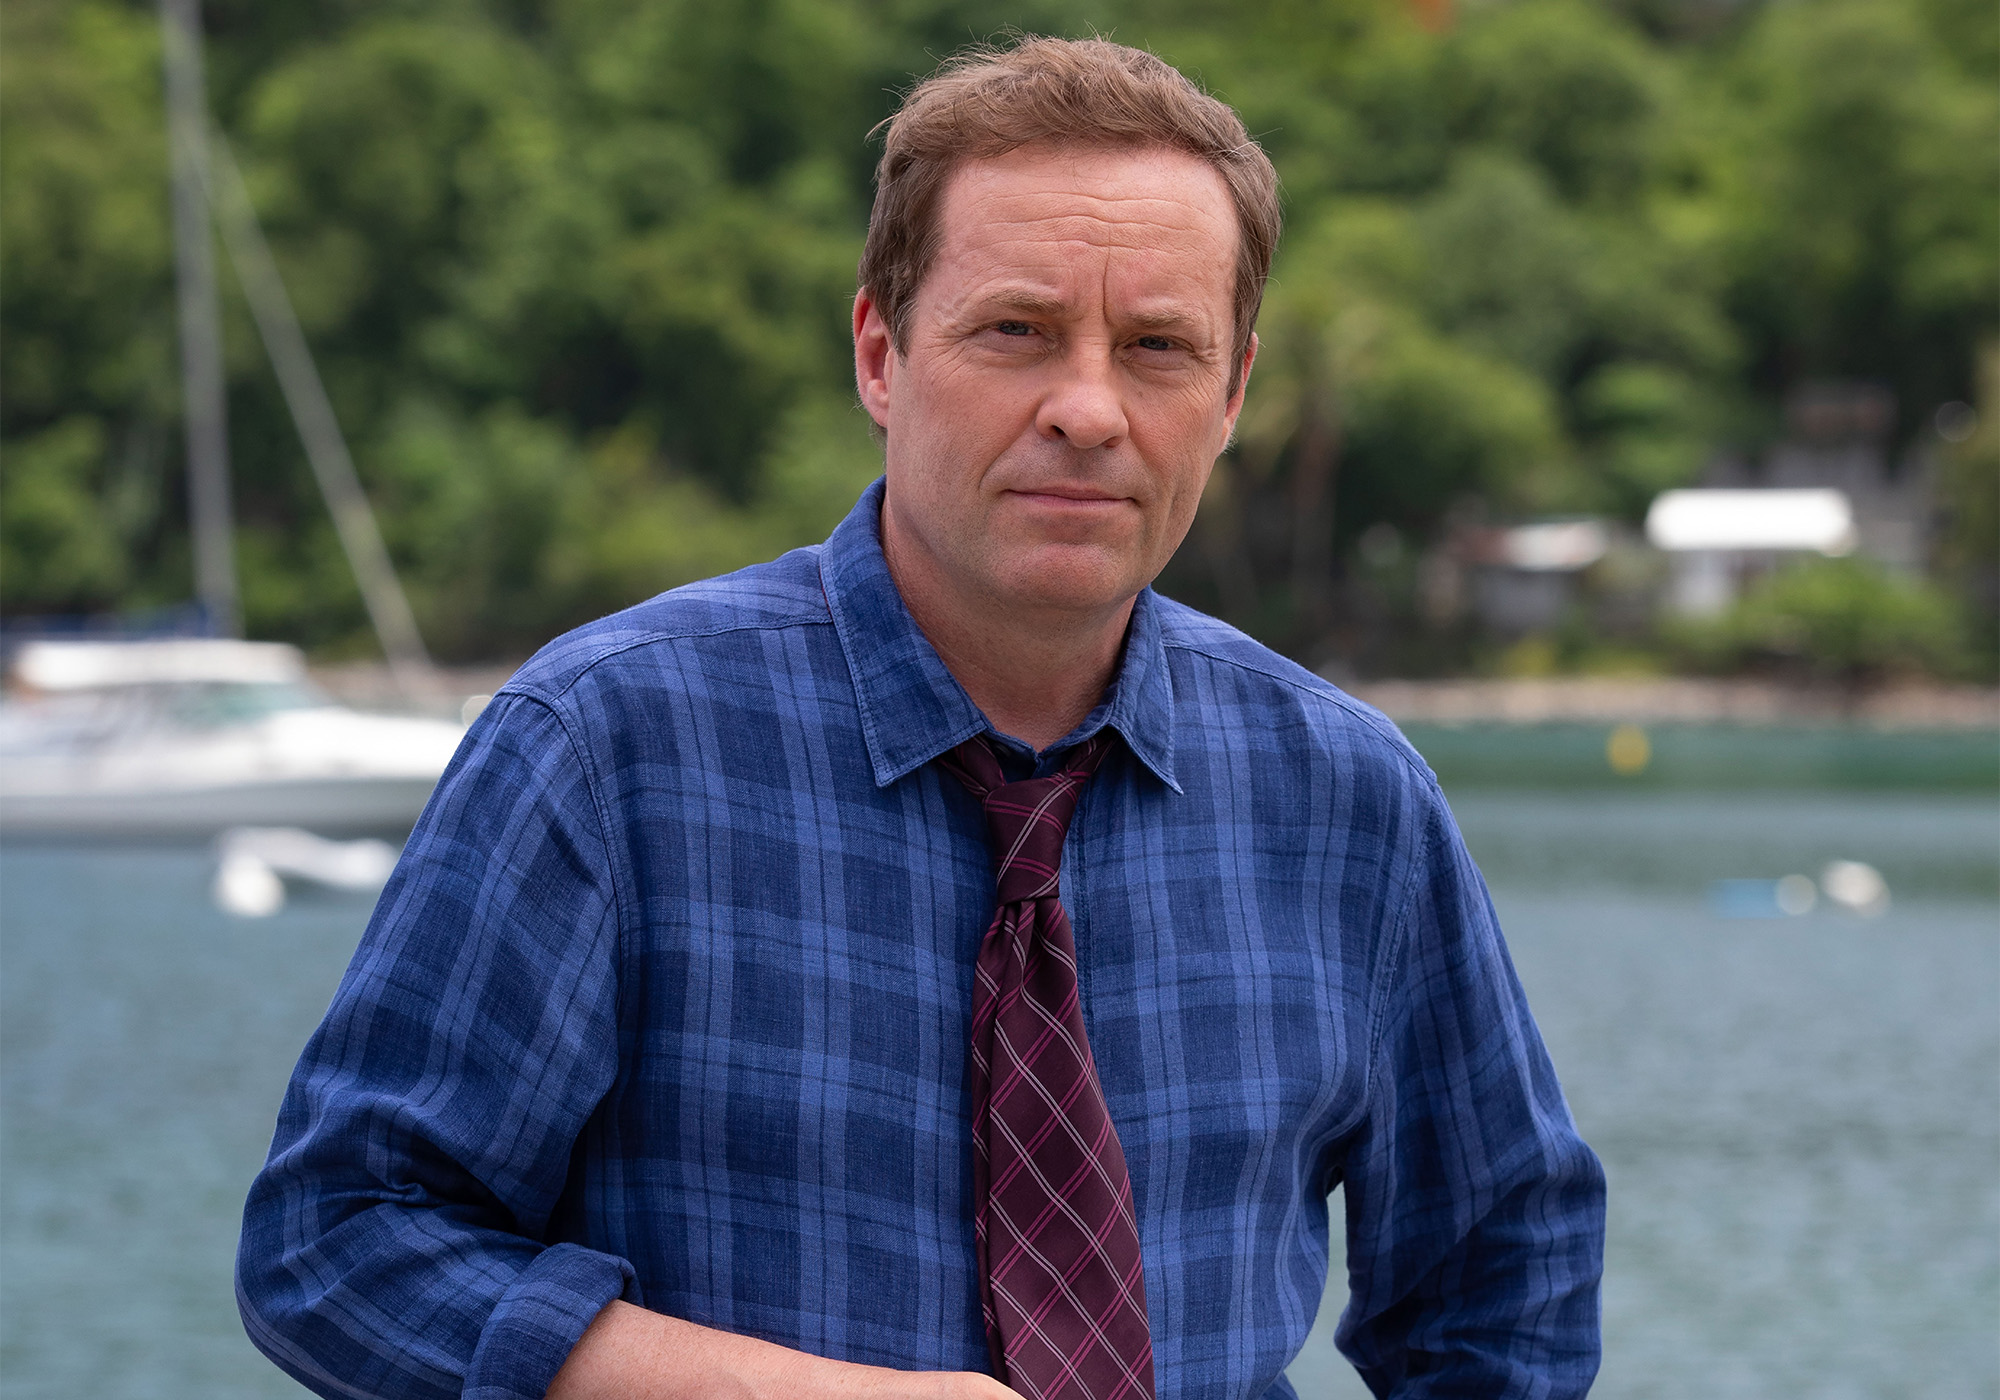 Death in Paradise teases first look at Ardal's replacement - is it Rowan Atkinson, Ralf Little, Alexander Armstrong or someone else?